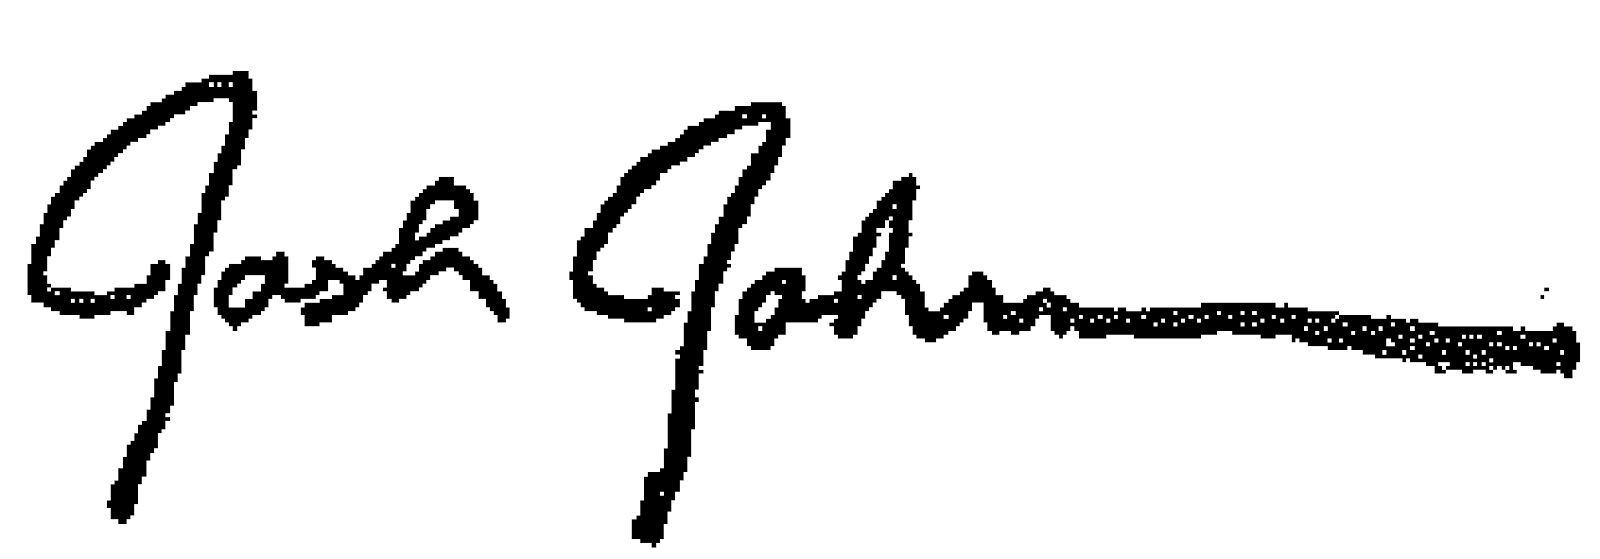 Josh Johnson Signature